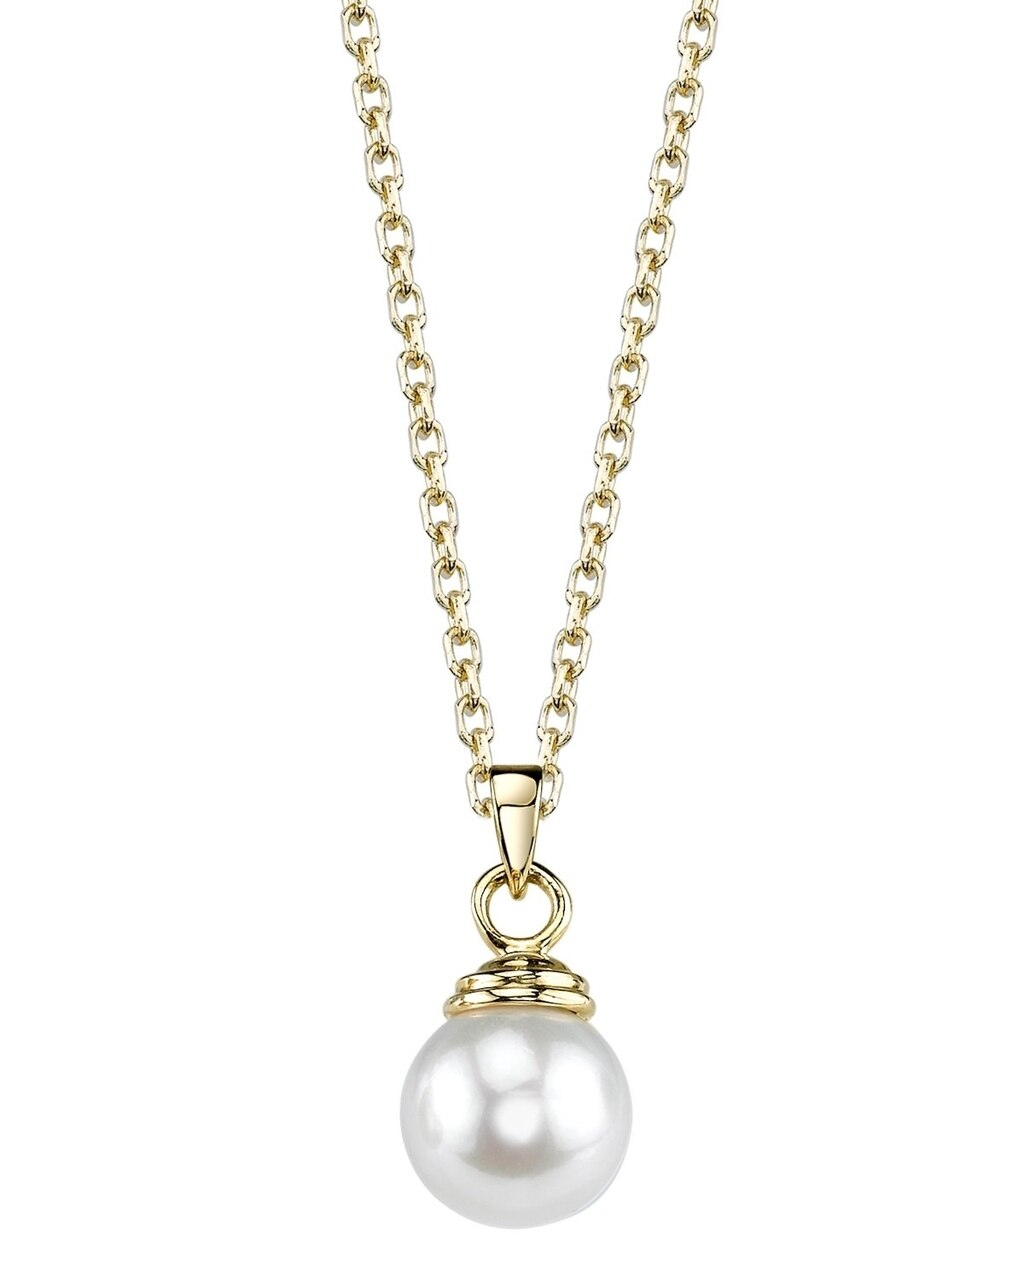 This classic pendant features a 8.0mm Freshwater  Pearl, handpicked for its luminous luster